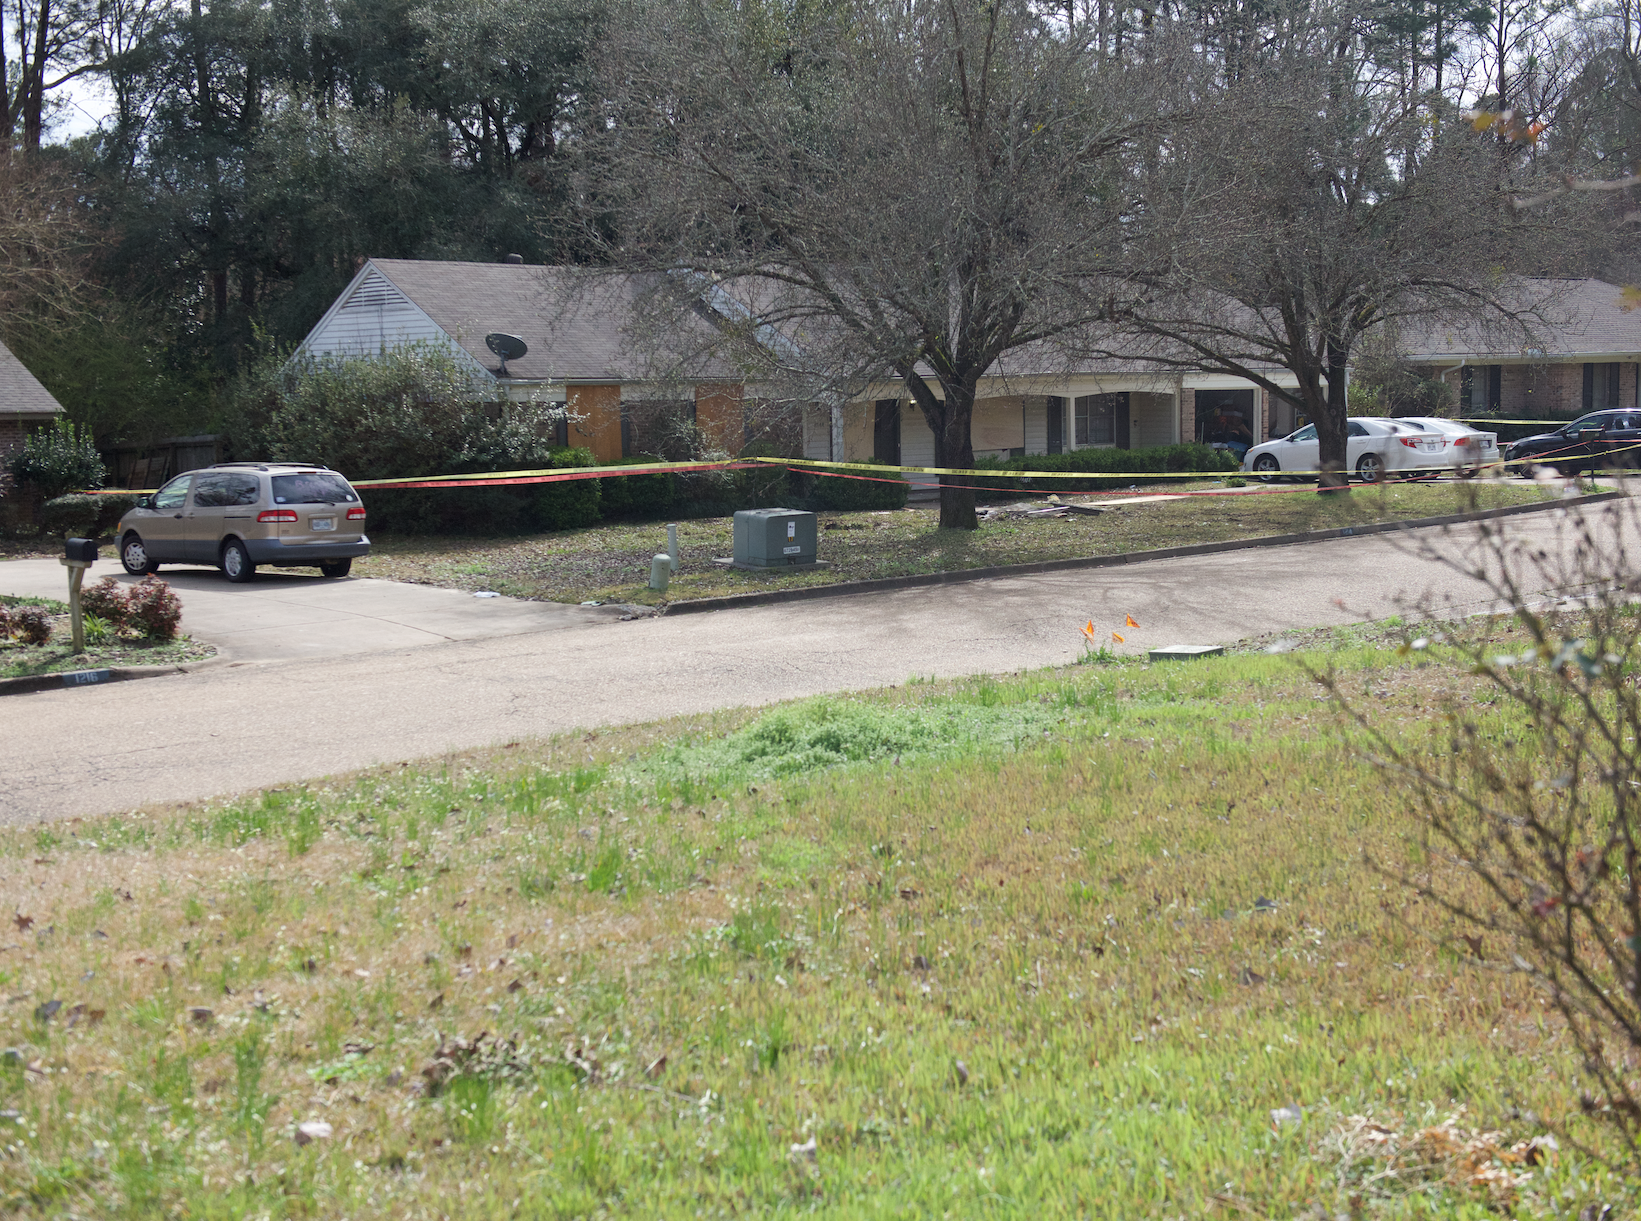 In this February 18, 2019 photo is a view of the home where four were found dead after a 12-hour standoff with law enforcement on Saturday, Feb. 16, 2019.  A suspect, Nam Quang Le, 34, was shot and later died at a hospital.